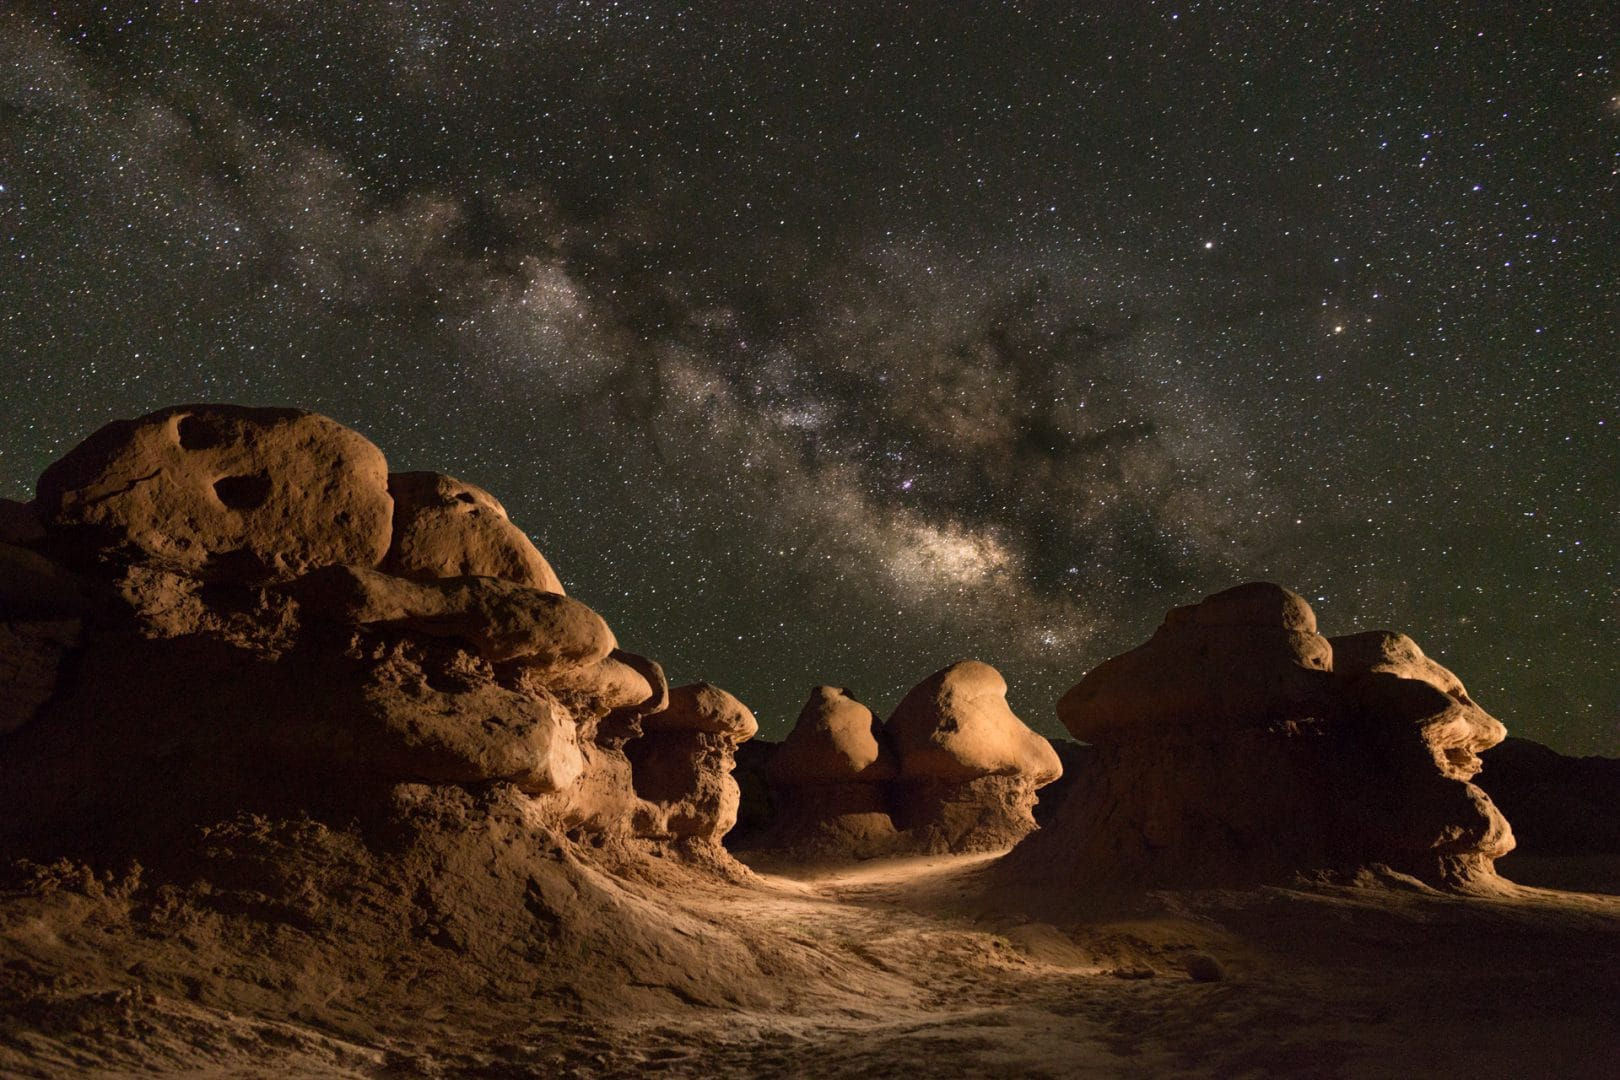 Milky Way over some hoodoos at Goblin Valley. The framing of the largest and weightiest rocks on the left complement the Galactic core on the right.